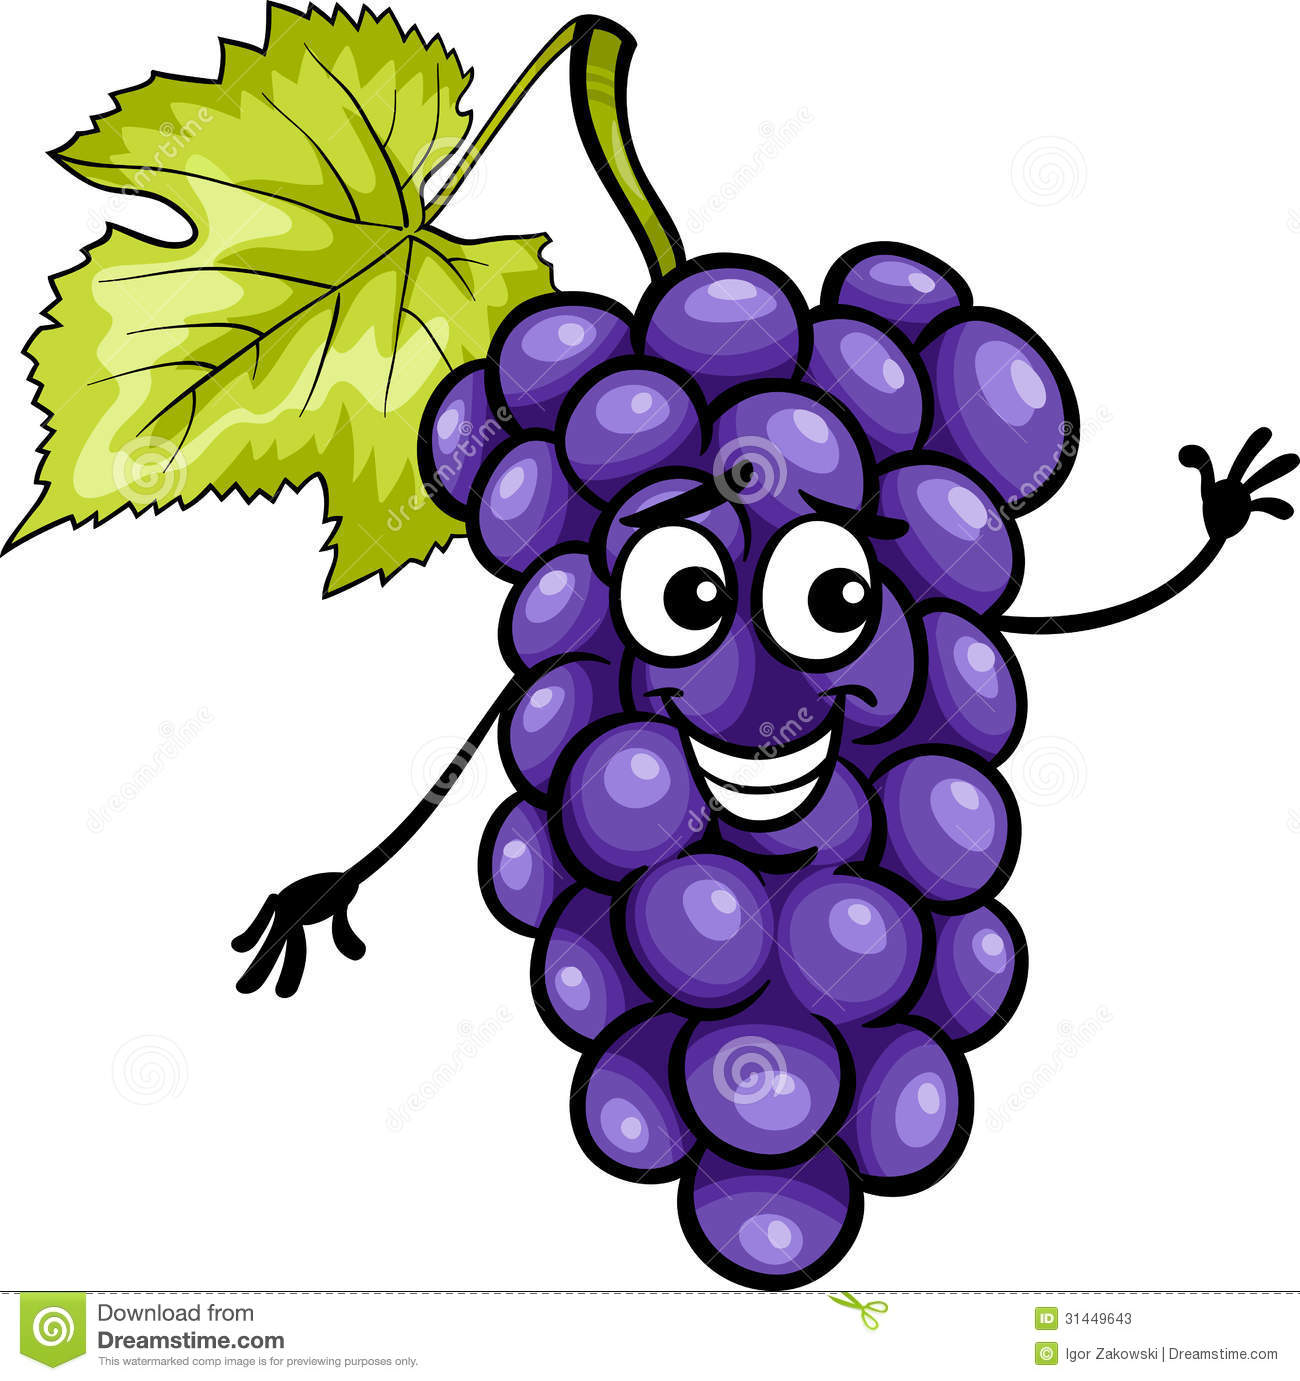 Berries clipart animated. Cartoon fruit grapes